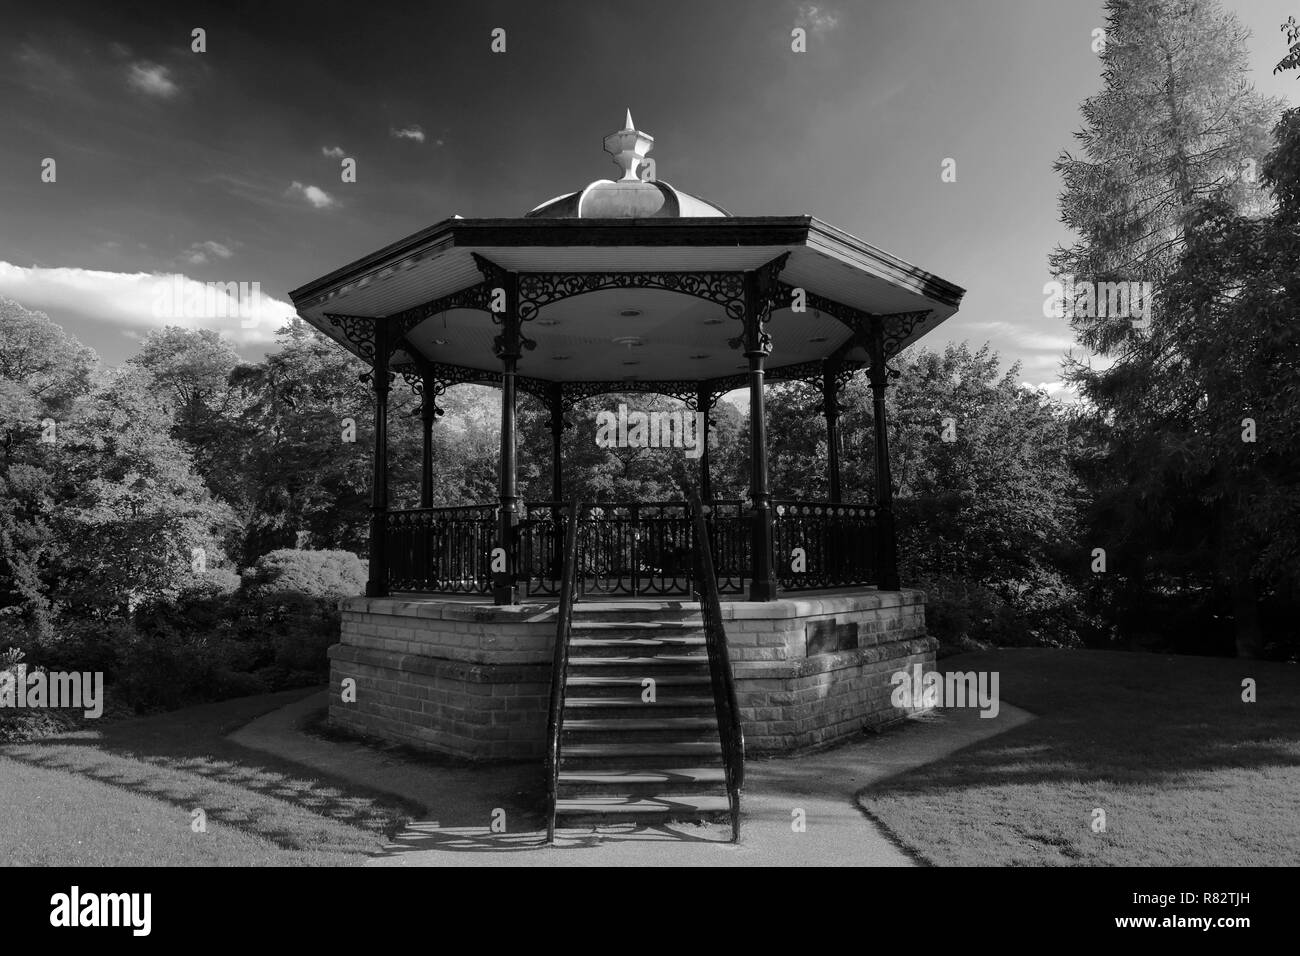 The Bandstand in the Pavilion Gardens in the market town of Buxton, Peak District National Park, Derbyshire, England, UK - Stock Image